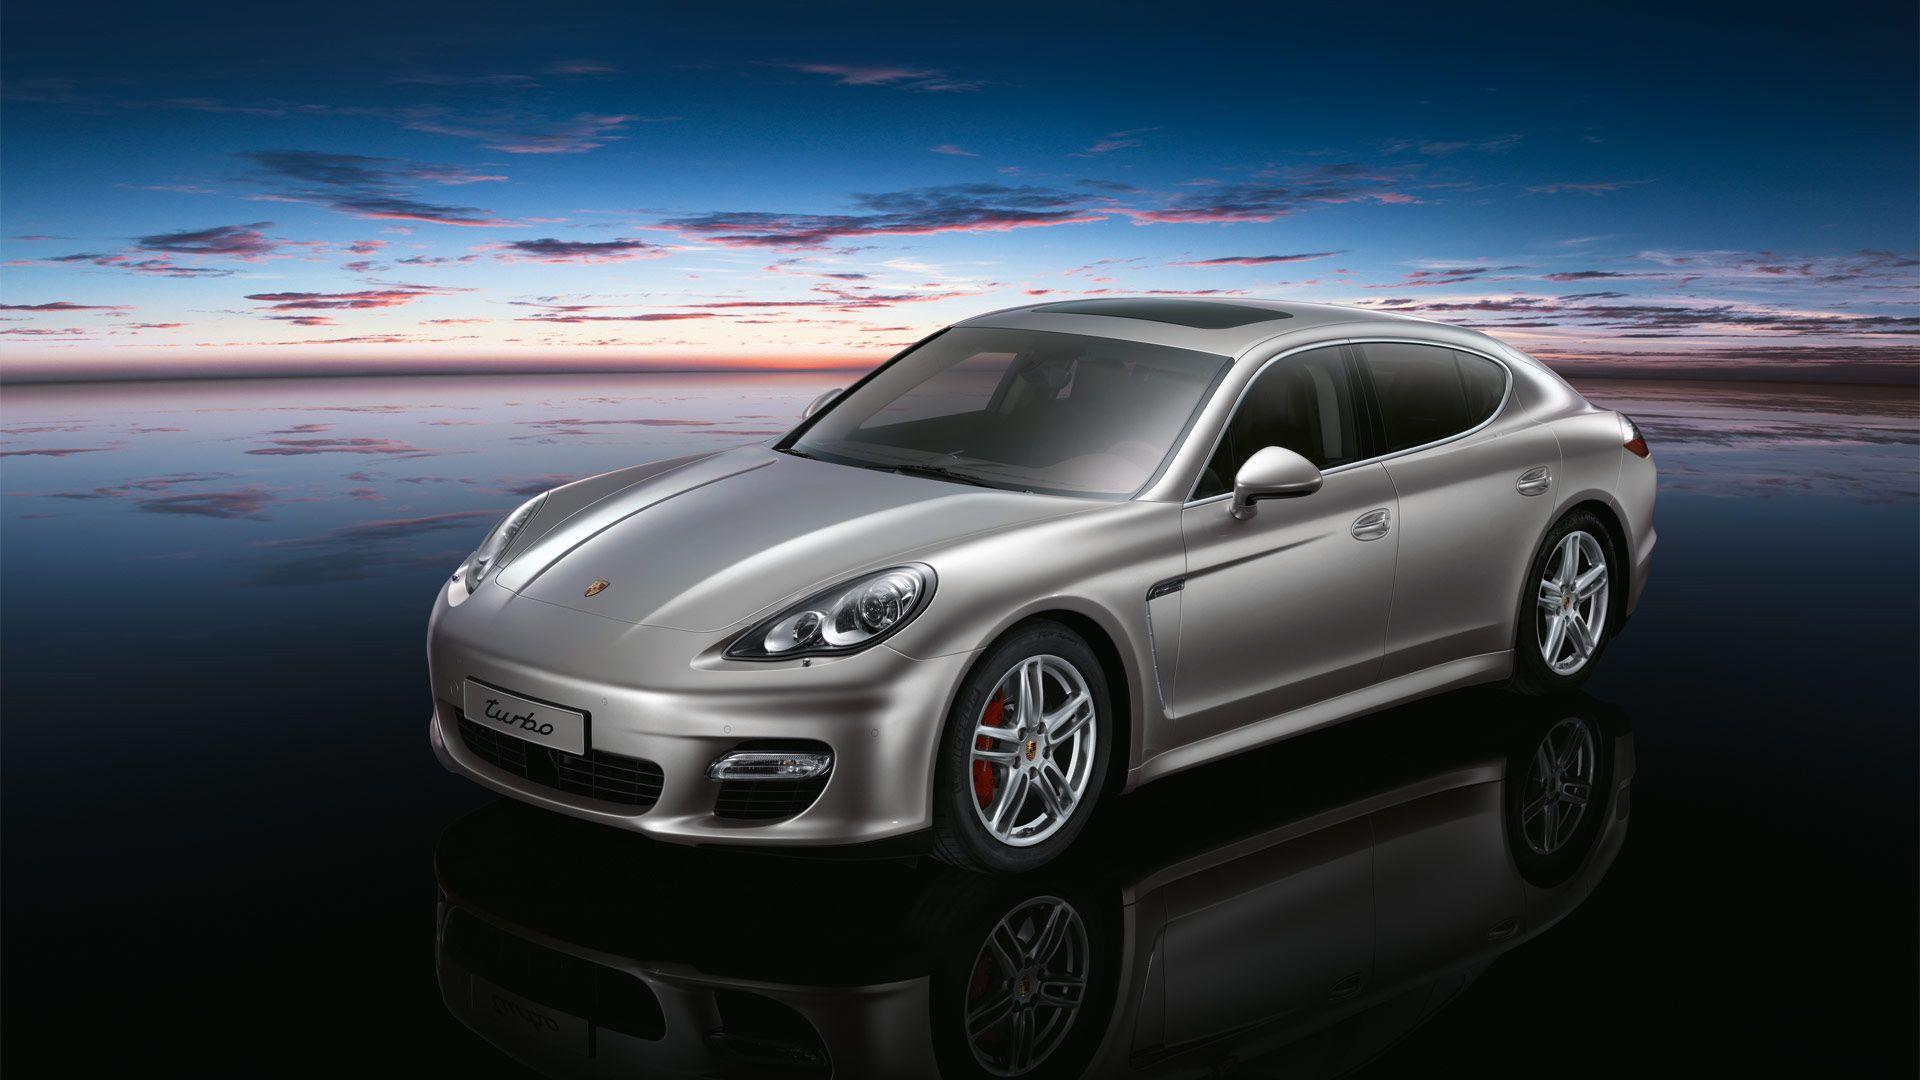 Porsche Panamera Turbo Wallpapers | HD Wallpapers